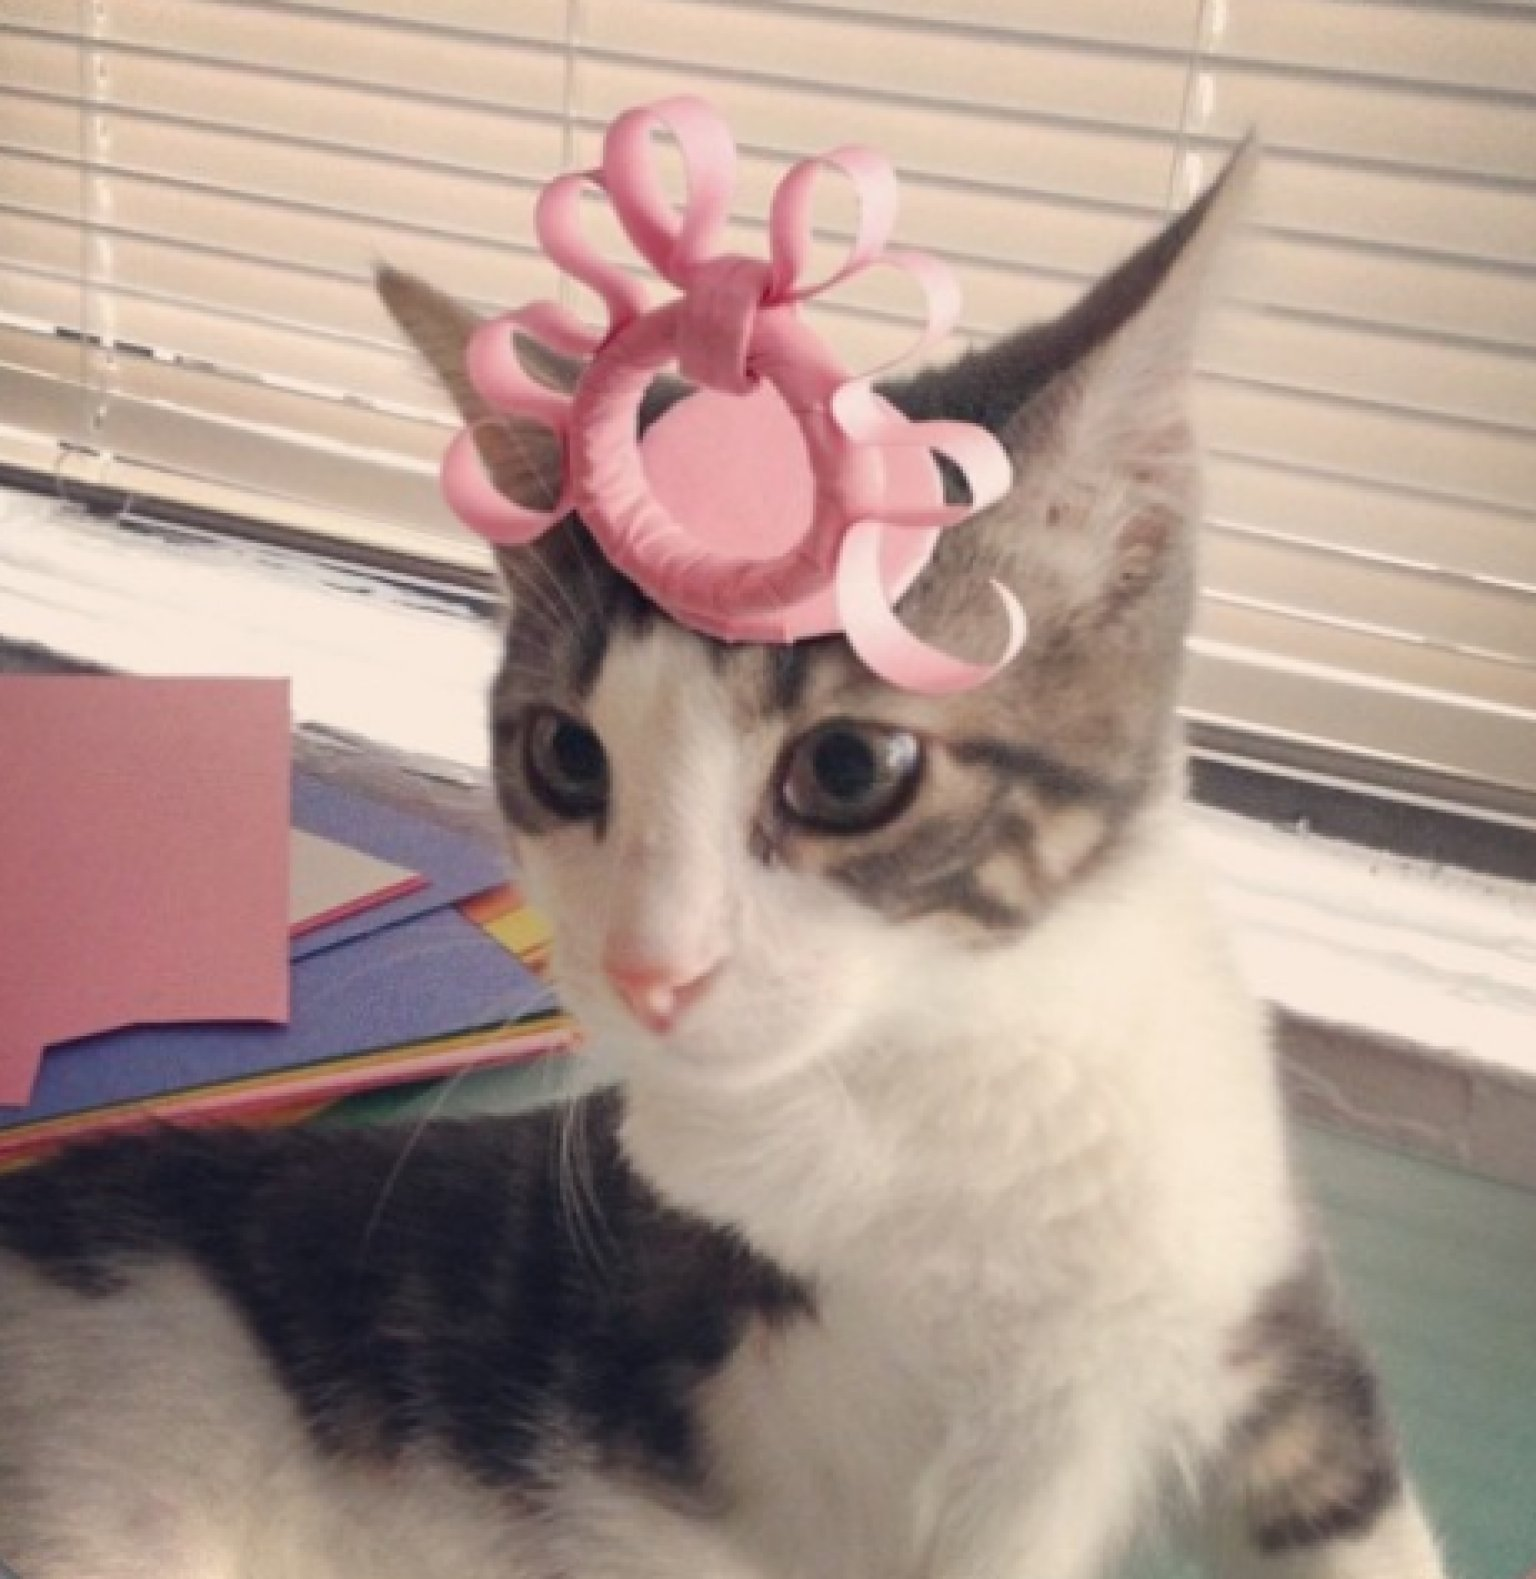 A Three Legged Kitty With A Certain Penchant For Hat Wearing Just Too Adorable More Pictures In The Article Cats Cute Cats Kitten